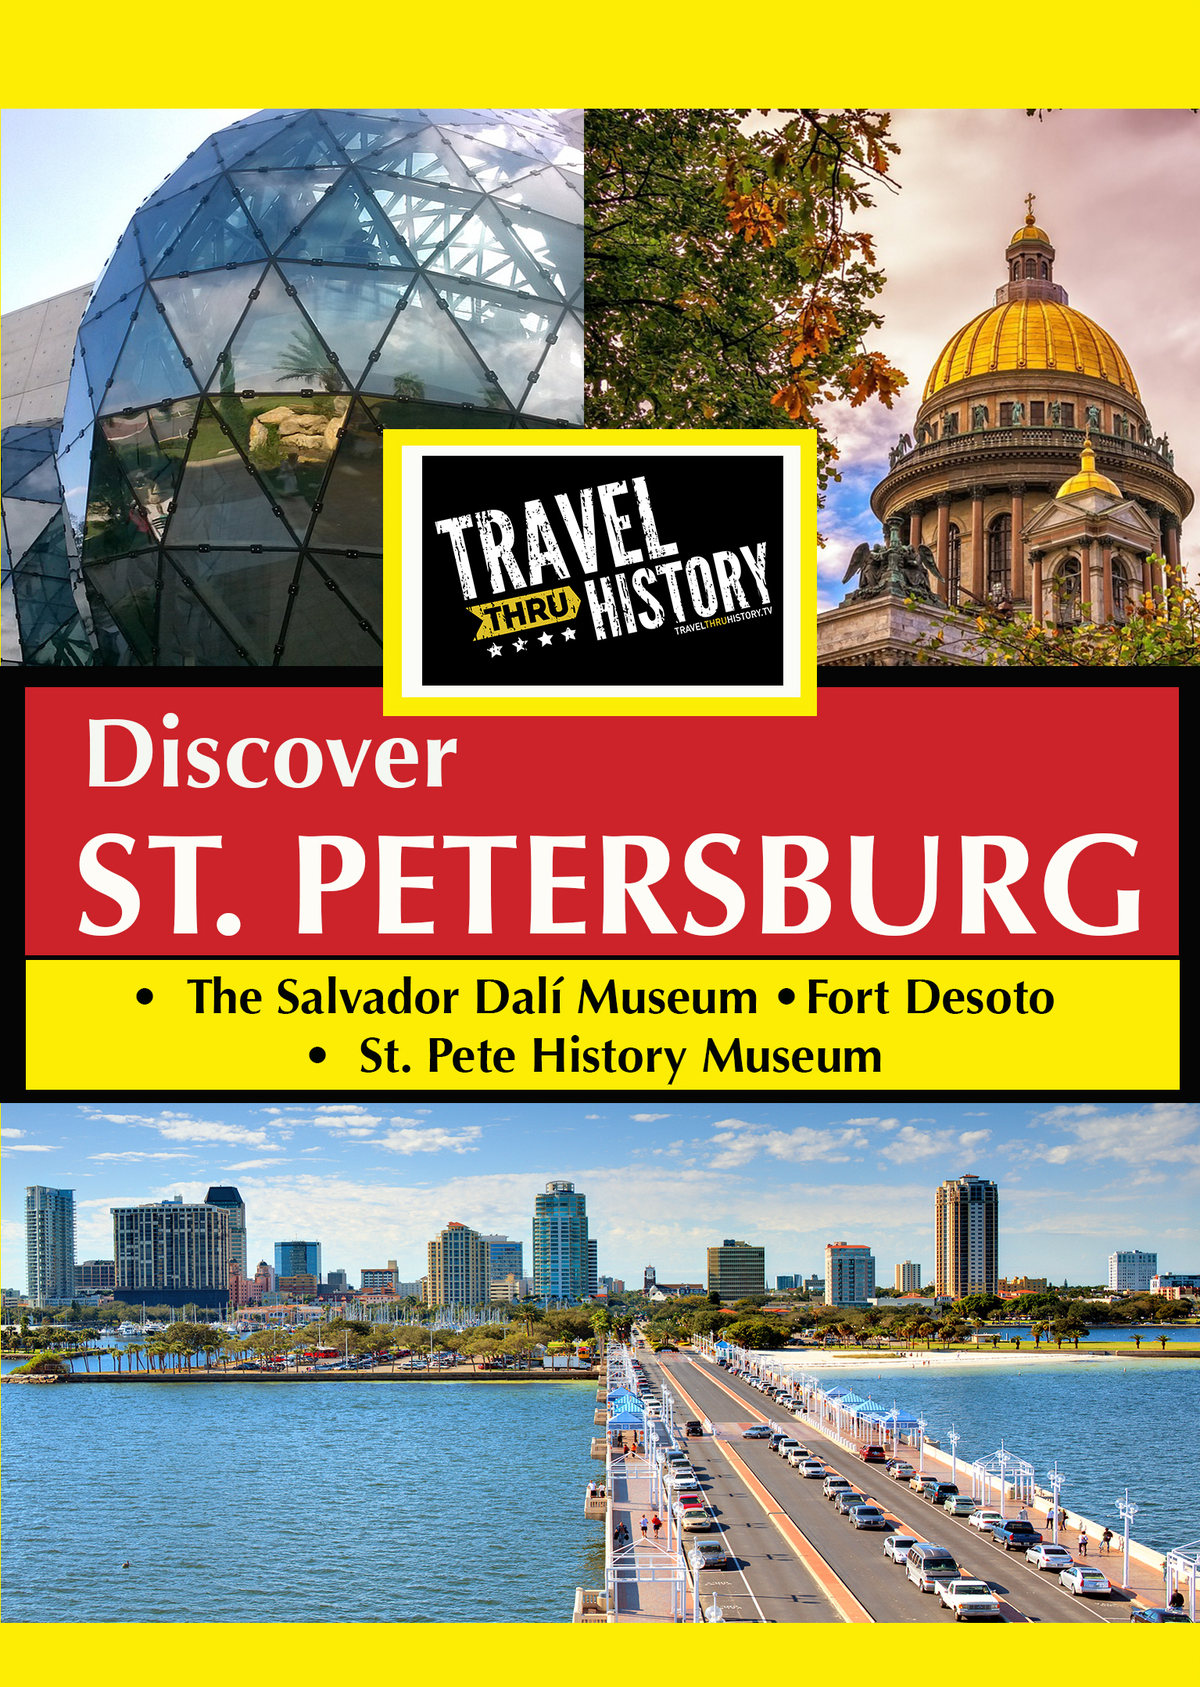 T8970 - Discover St. Petersburg